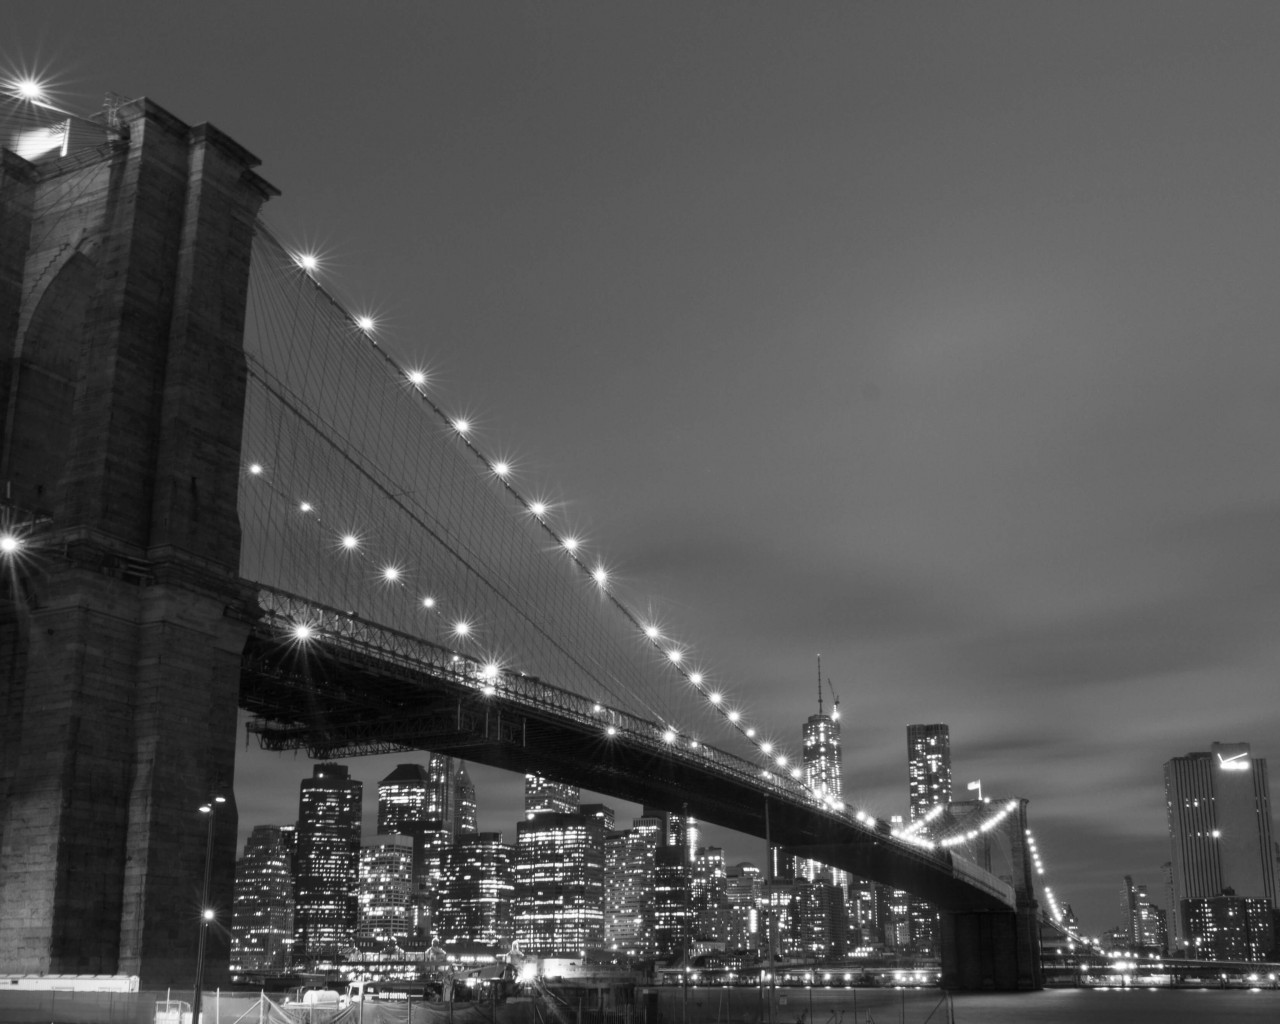 Brooklyn Bridge, New York City in Black & White Wallpaper for Desktop 1280x1024